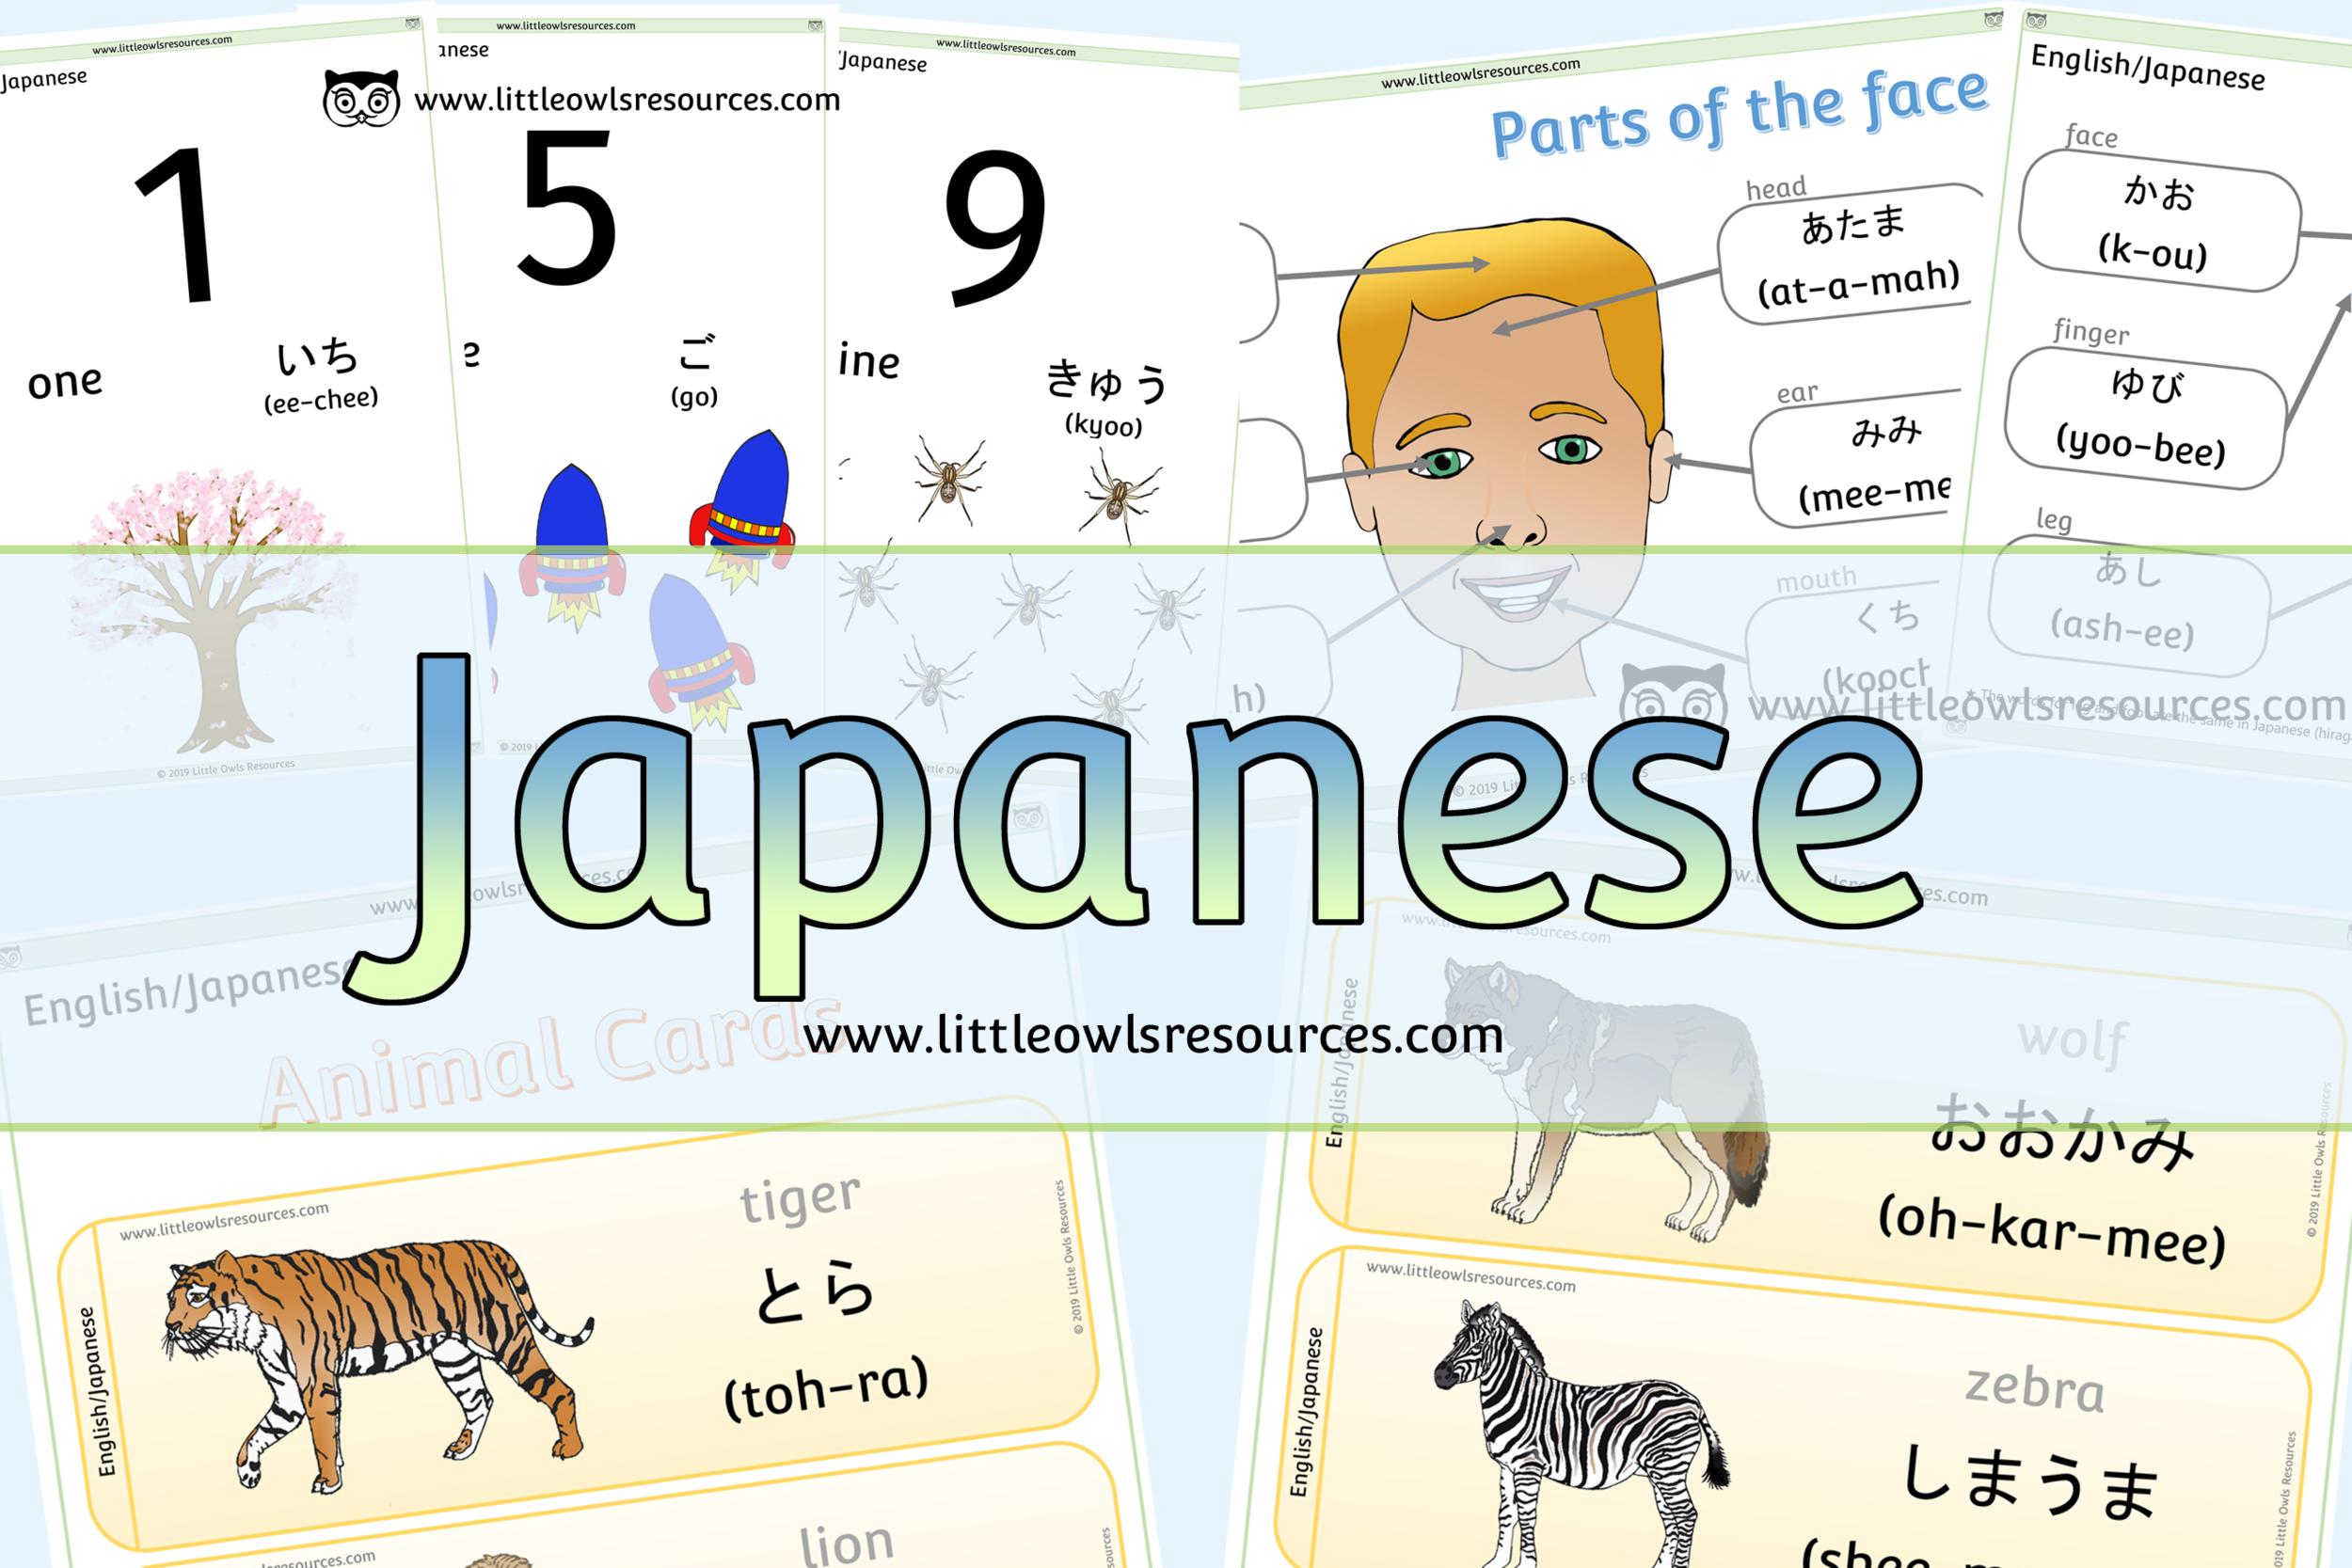 Japanese/English Dual Language Resources